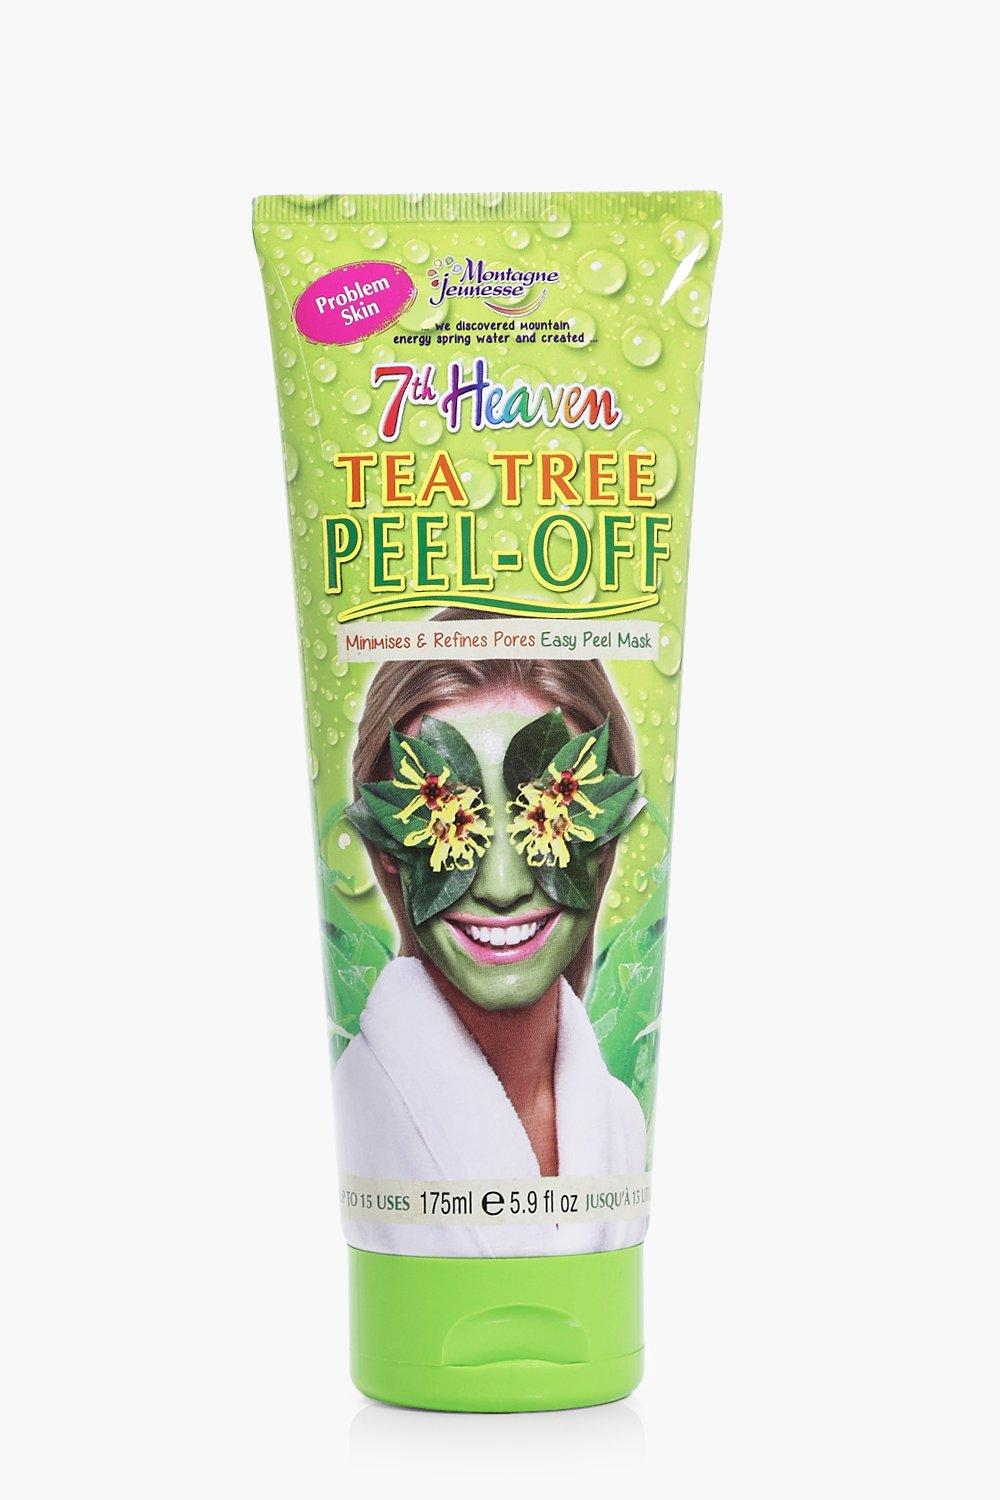 Tea Tree Peel Off Mask 175ml Tube